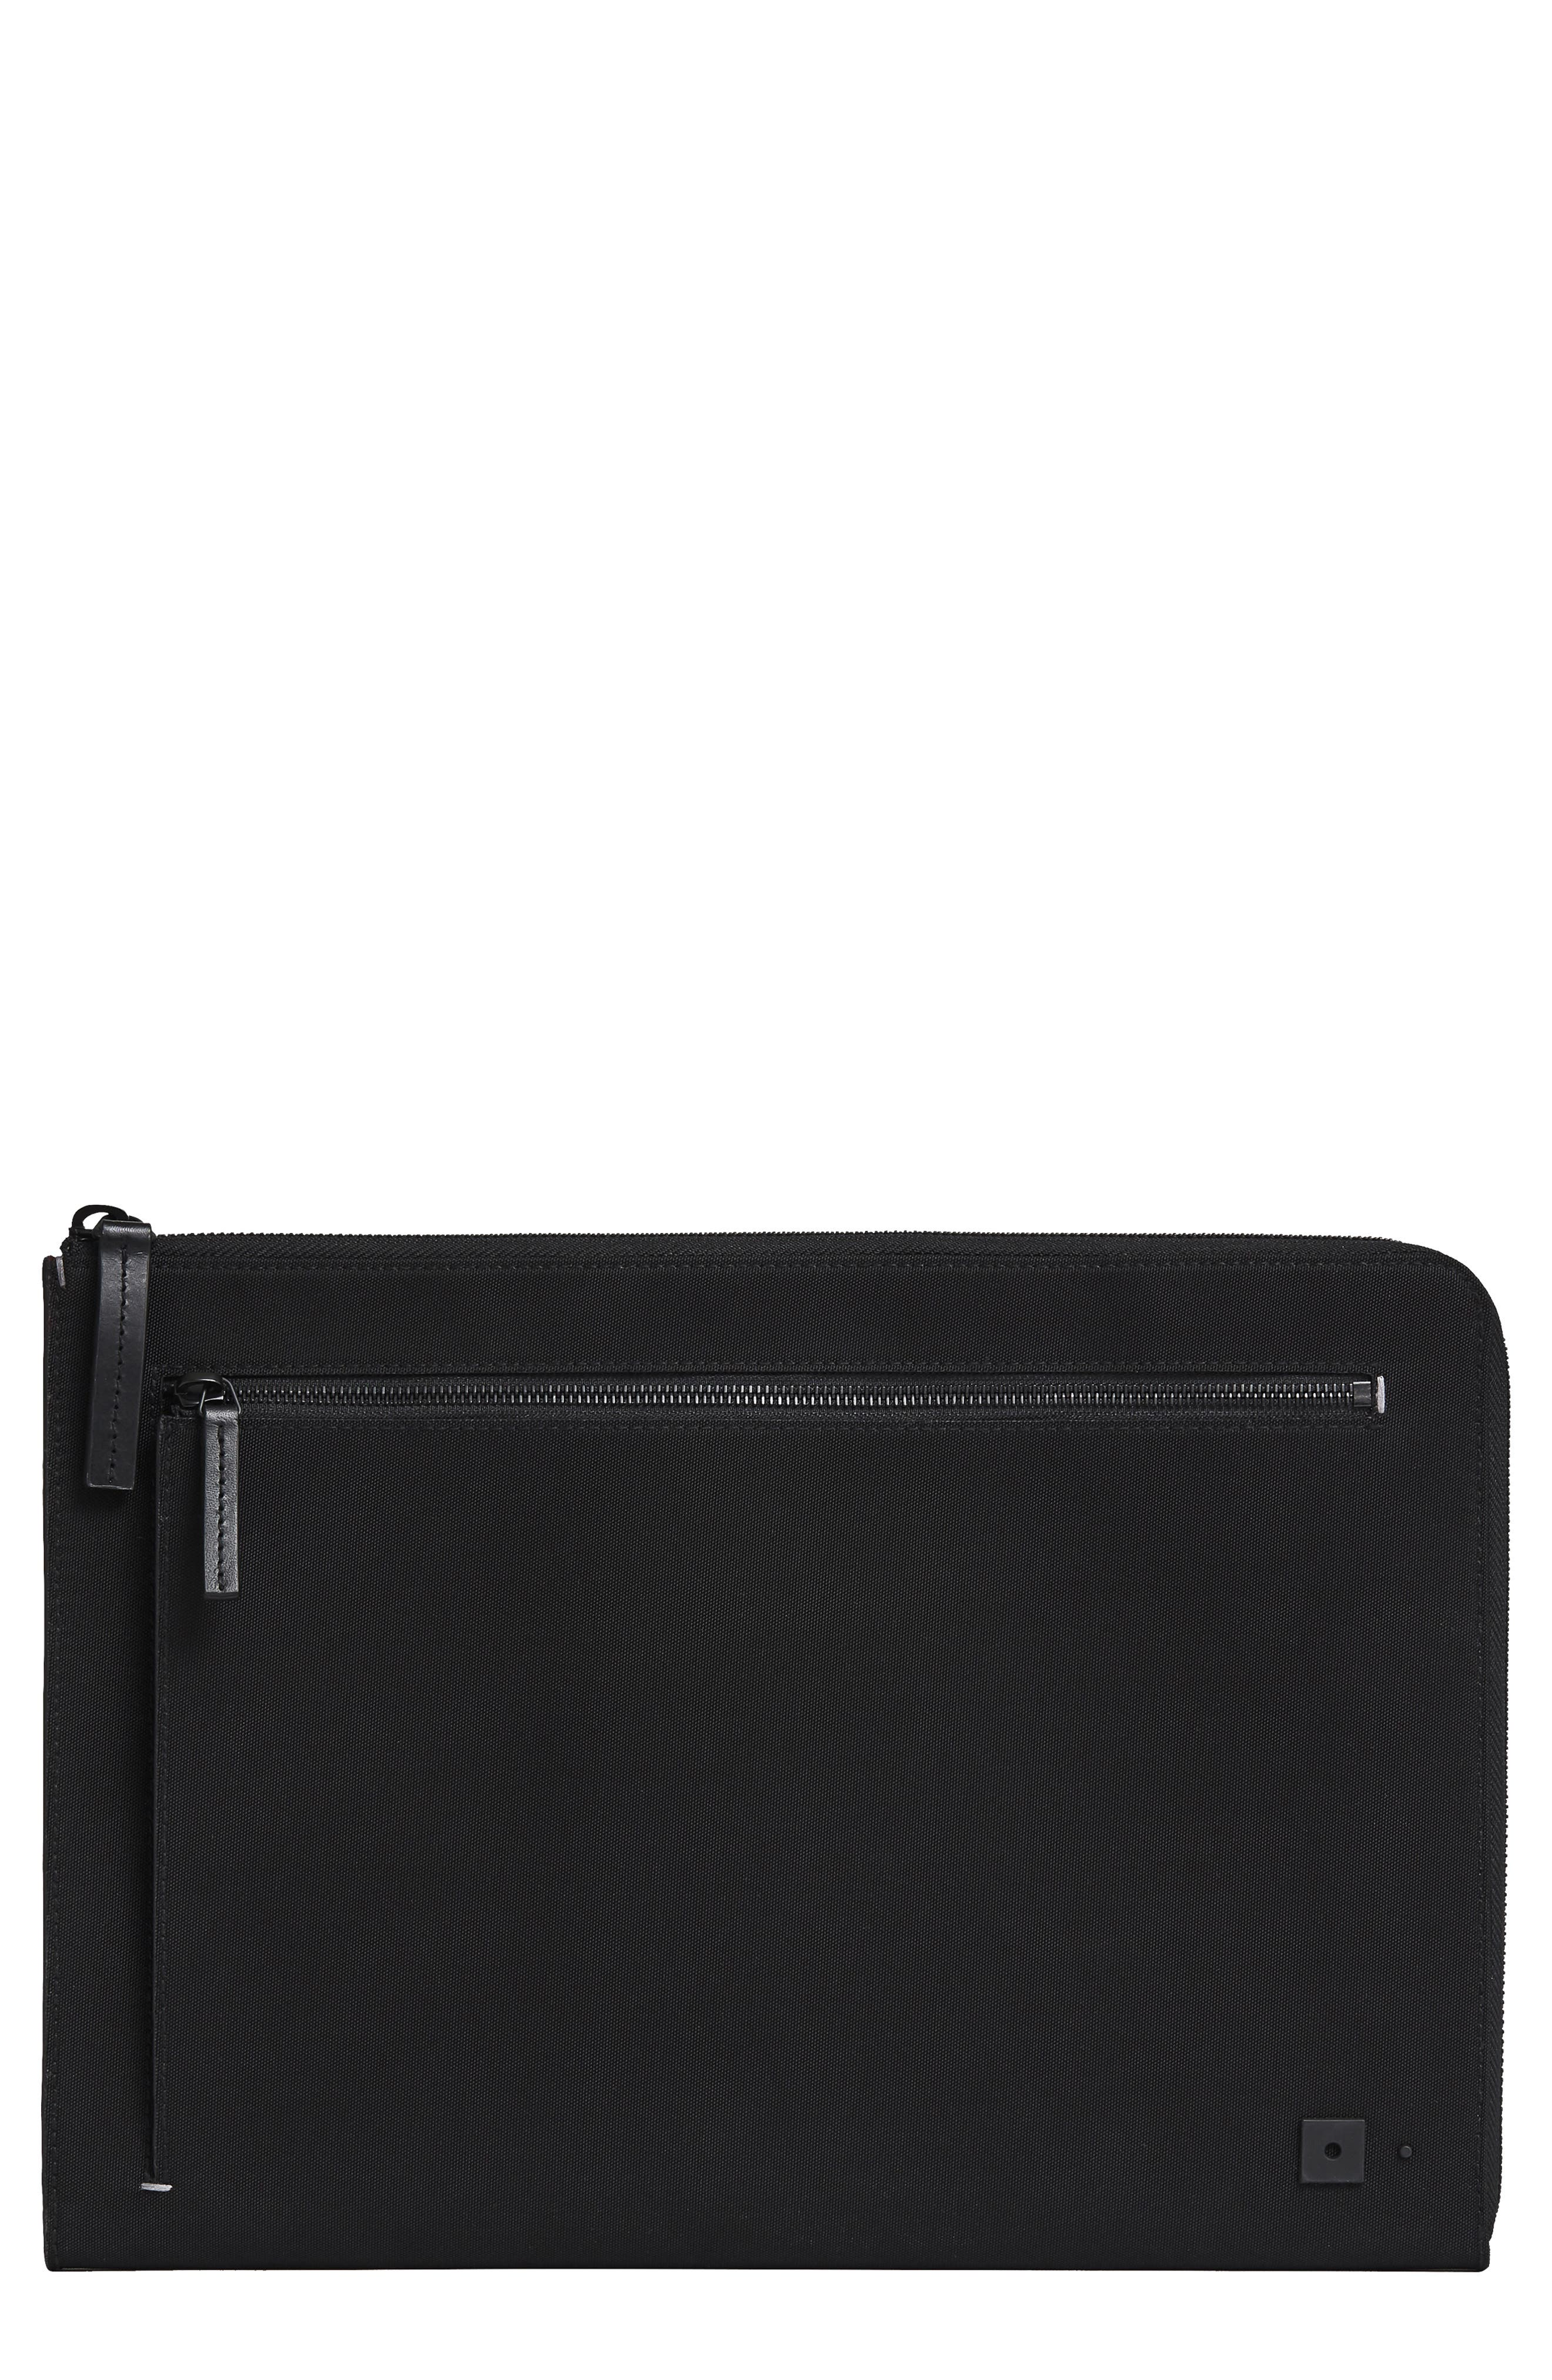 Portfolio Case,                         Main,                         color, BLACK NYLON/ BLACK LEATHER